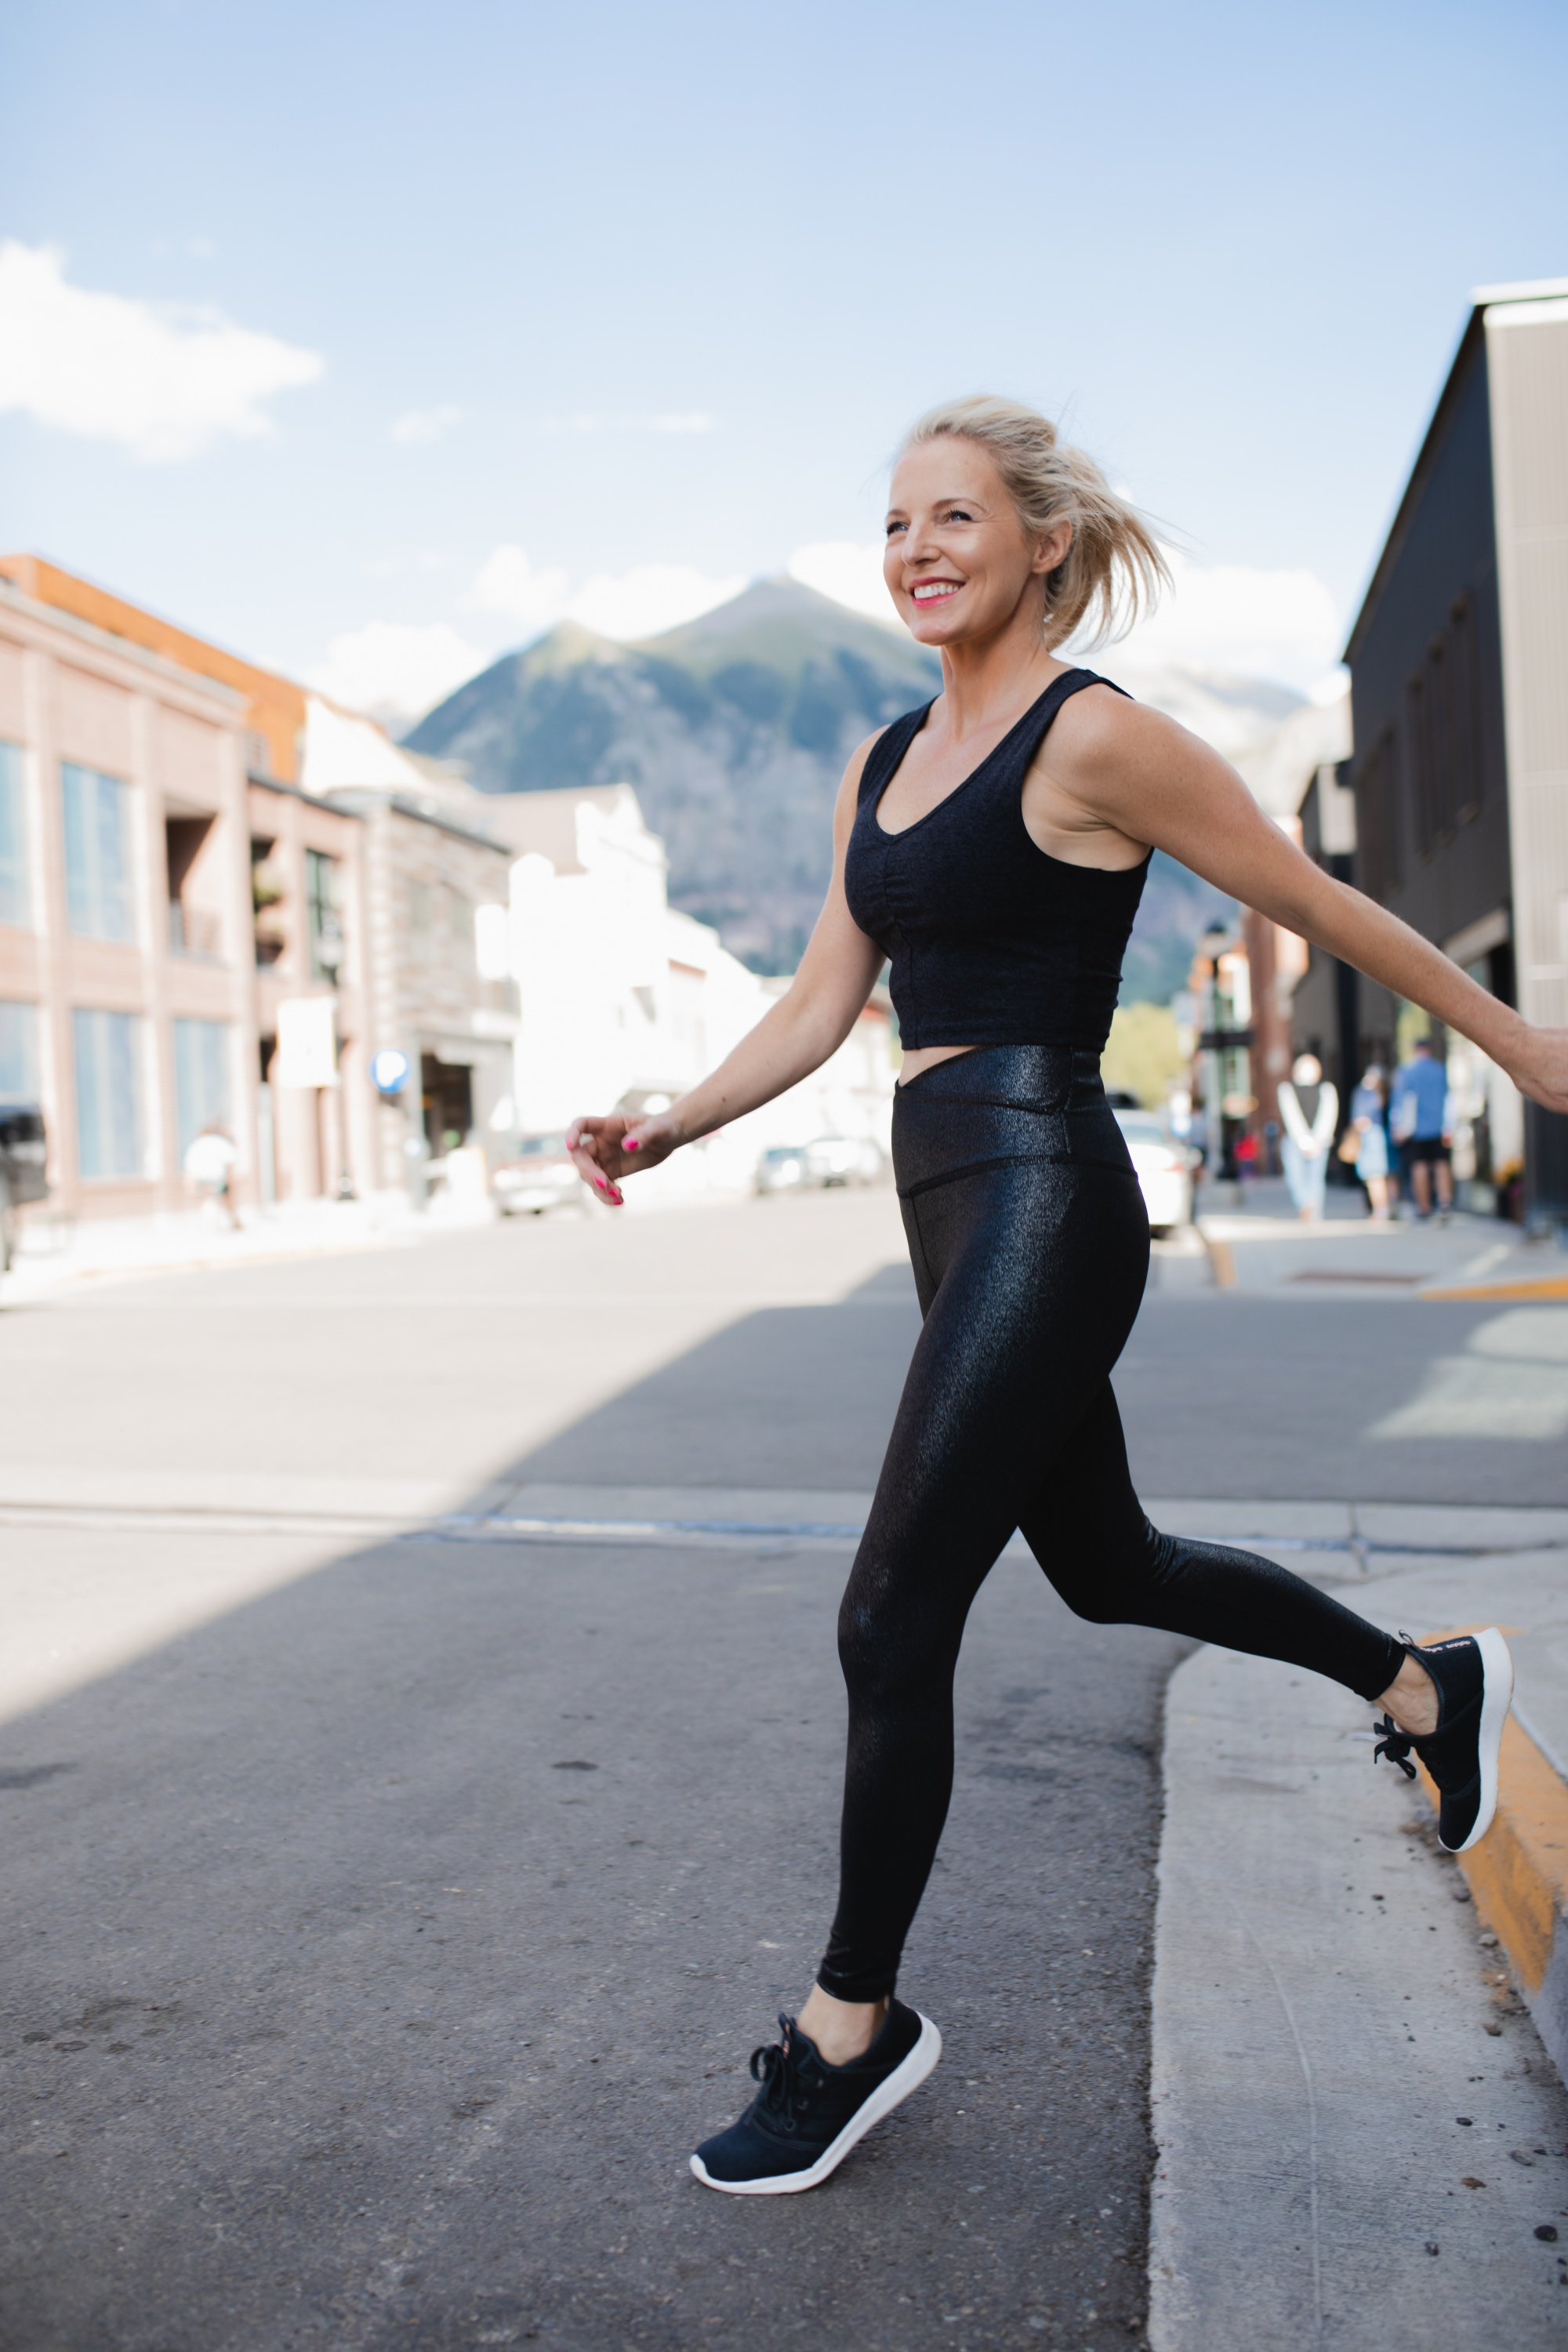 Nordstrom Sale Activewear, Fashion blogger Erin Busbee of Busbee Style wearing Beyond Yoga leggings, black Zella sports bra, and adidas sneakers from the Nordstrom Anniversary Sale in Telluride, Colorado, best activewear brands over 40